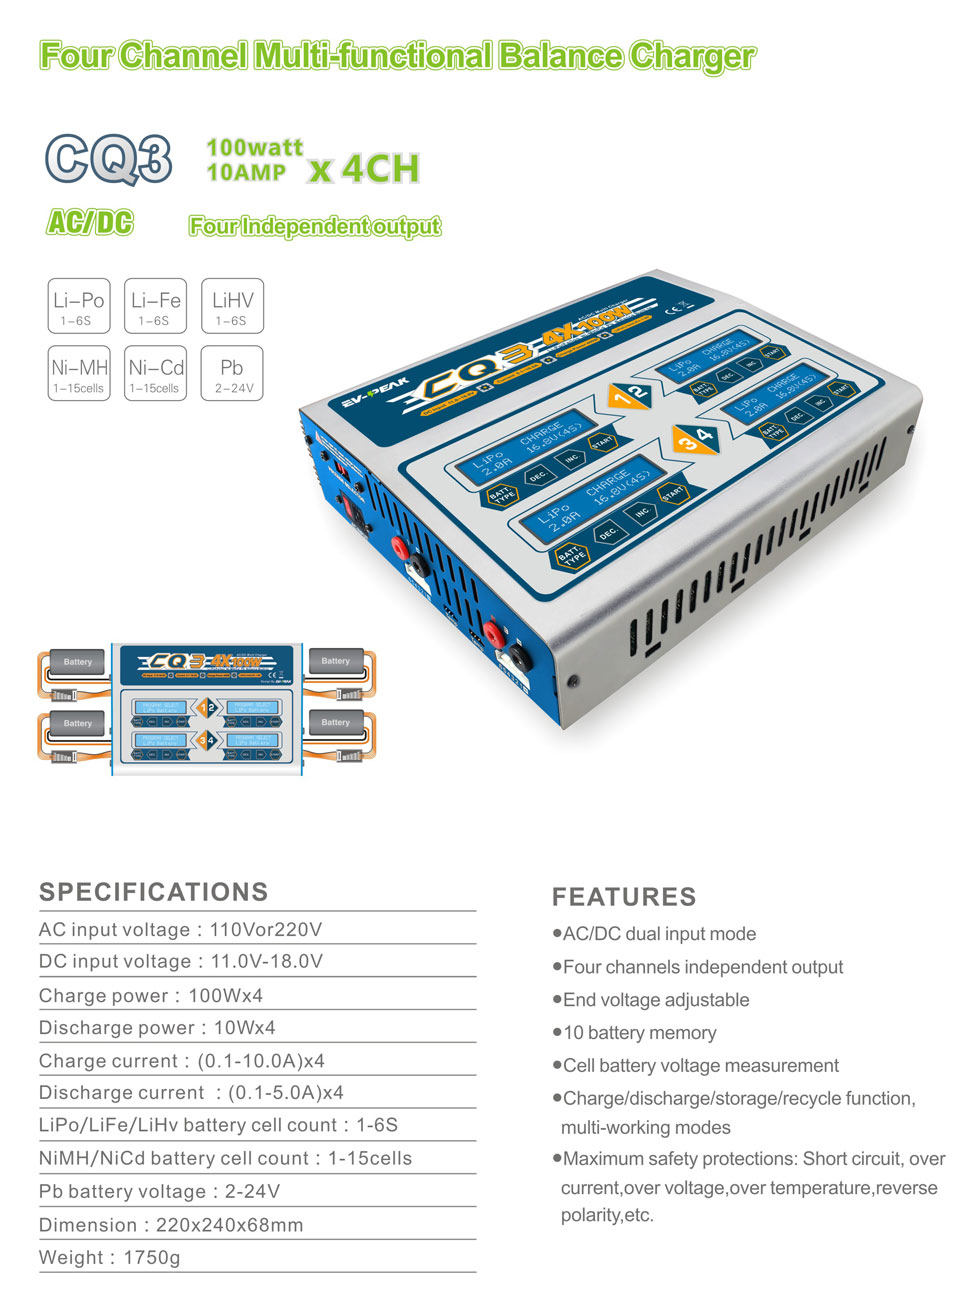 Ev Peak Cq3 Lipo Battery Balance Charger100wx4 10a Four Balancer Seven Segments 100wx4 Channel Lihv Life Nicd Nimh Charger Discharger